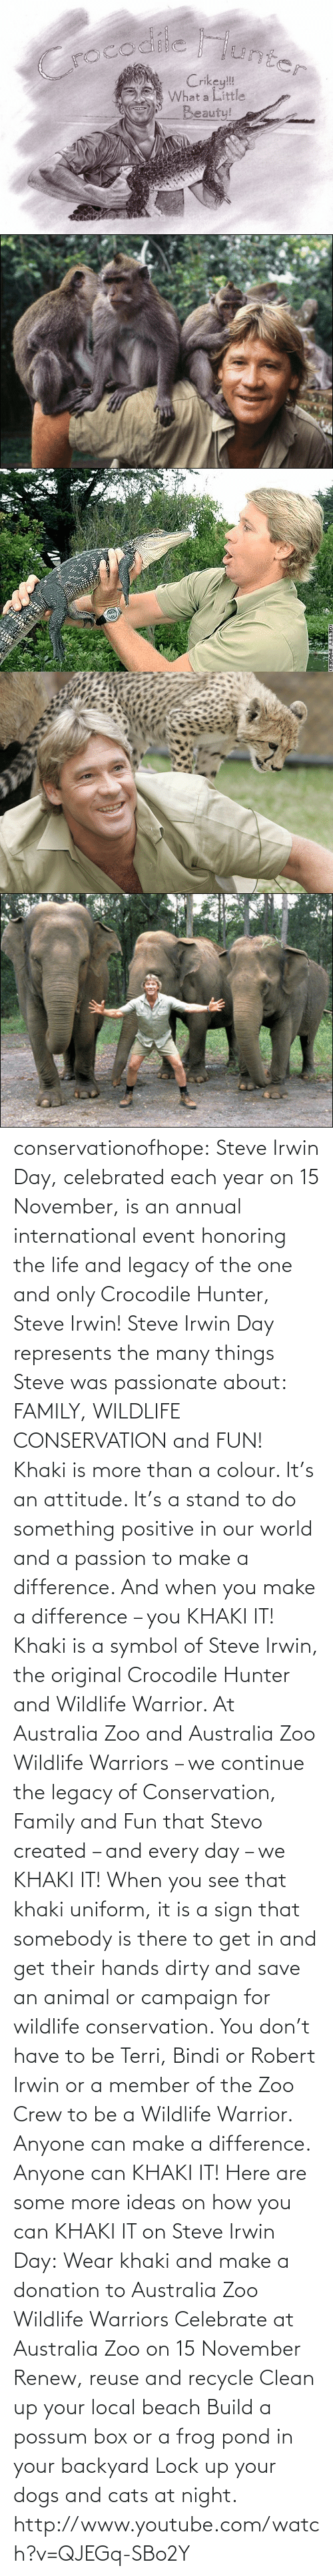 Reuse: CroCodilie junt  Crikey!!  What a Little  Beauty!   IMAGES) conservationofhope:  Steve Irwin Day, celebrated each year on 15 November, is an annual international event honoring the life and legacy of the one and only Crocodile Hunter, Steve Irwin! Steve Irwin Day represents the many things Steve was passionate about: FAMILY, WILDLIFE CONSERVATION and FUN! Khaki is more than a colour. It's an attitude. It's a stand to do something positive in our world and a passion to make a difference. And when you make a difference – you KHAKI IT! Khaki is a symbol of Steve Irwin, the original Crocodile Hunter and Wildlife Warrior. At Australia Zoo and Australia Zoo Wildlife Warriors – we continue the legacy of Conservation, Family and Fun that Stevo created – and every day – we KHAKI IT! When you see that khaki uniform, it is a sign that somebody is there to get in and get their hands dirty and save an animal or campaign for wildlife conservation. You don't have to be Terri, Bindi or Robert Irwin or a member of the Zoo Crew to be a Wildlife Warrior. Anyone can make a difference. Anyone can KHAKI IT!  Here are some more ideas on how you can KHAKI IT on Steve Irwin Day: Wear khaki and make a donation to Australia Zoo Wildlife Warriors Celebrate at Australia Zoo on 15 November Renew, reuse and recycle Clean up your local beach Build a possum box or a frog pond in your backyard Lock up your dogs and cats at night. http://www.youtube.com/watch?v=QJEGq-SBo2Y